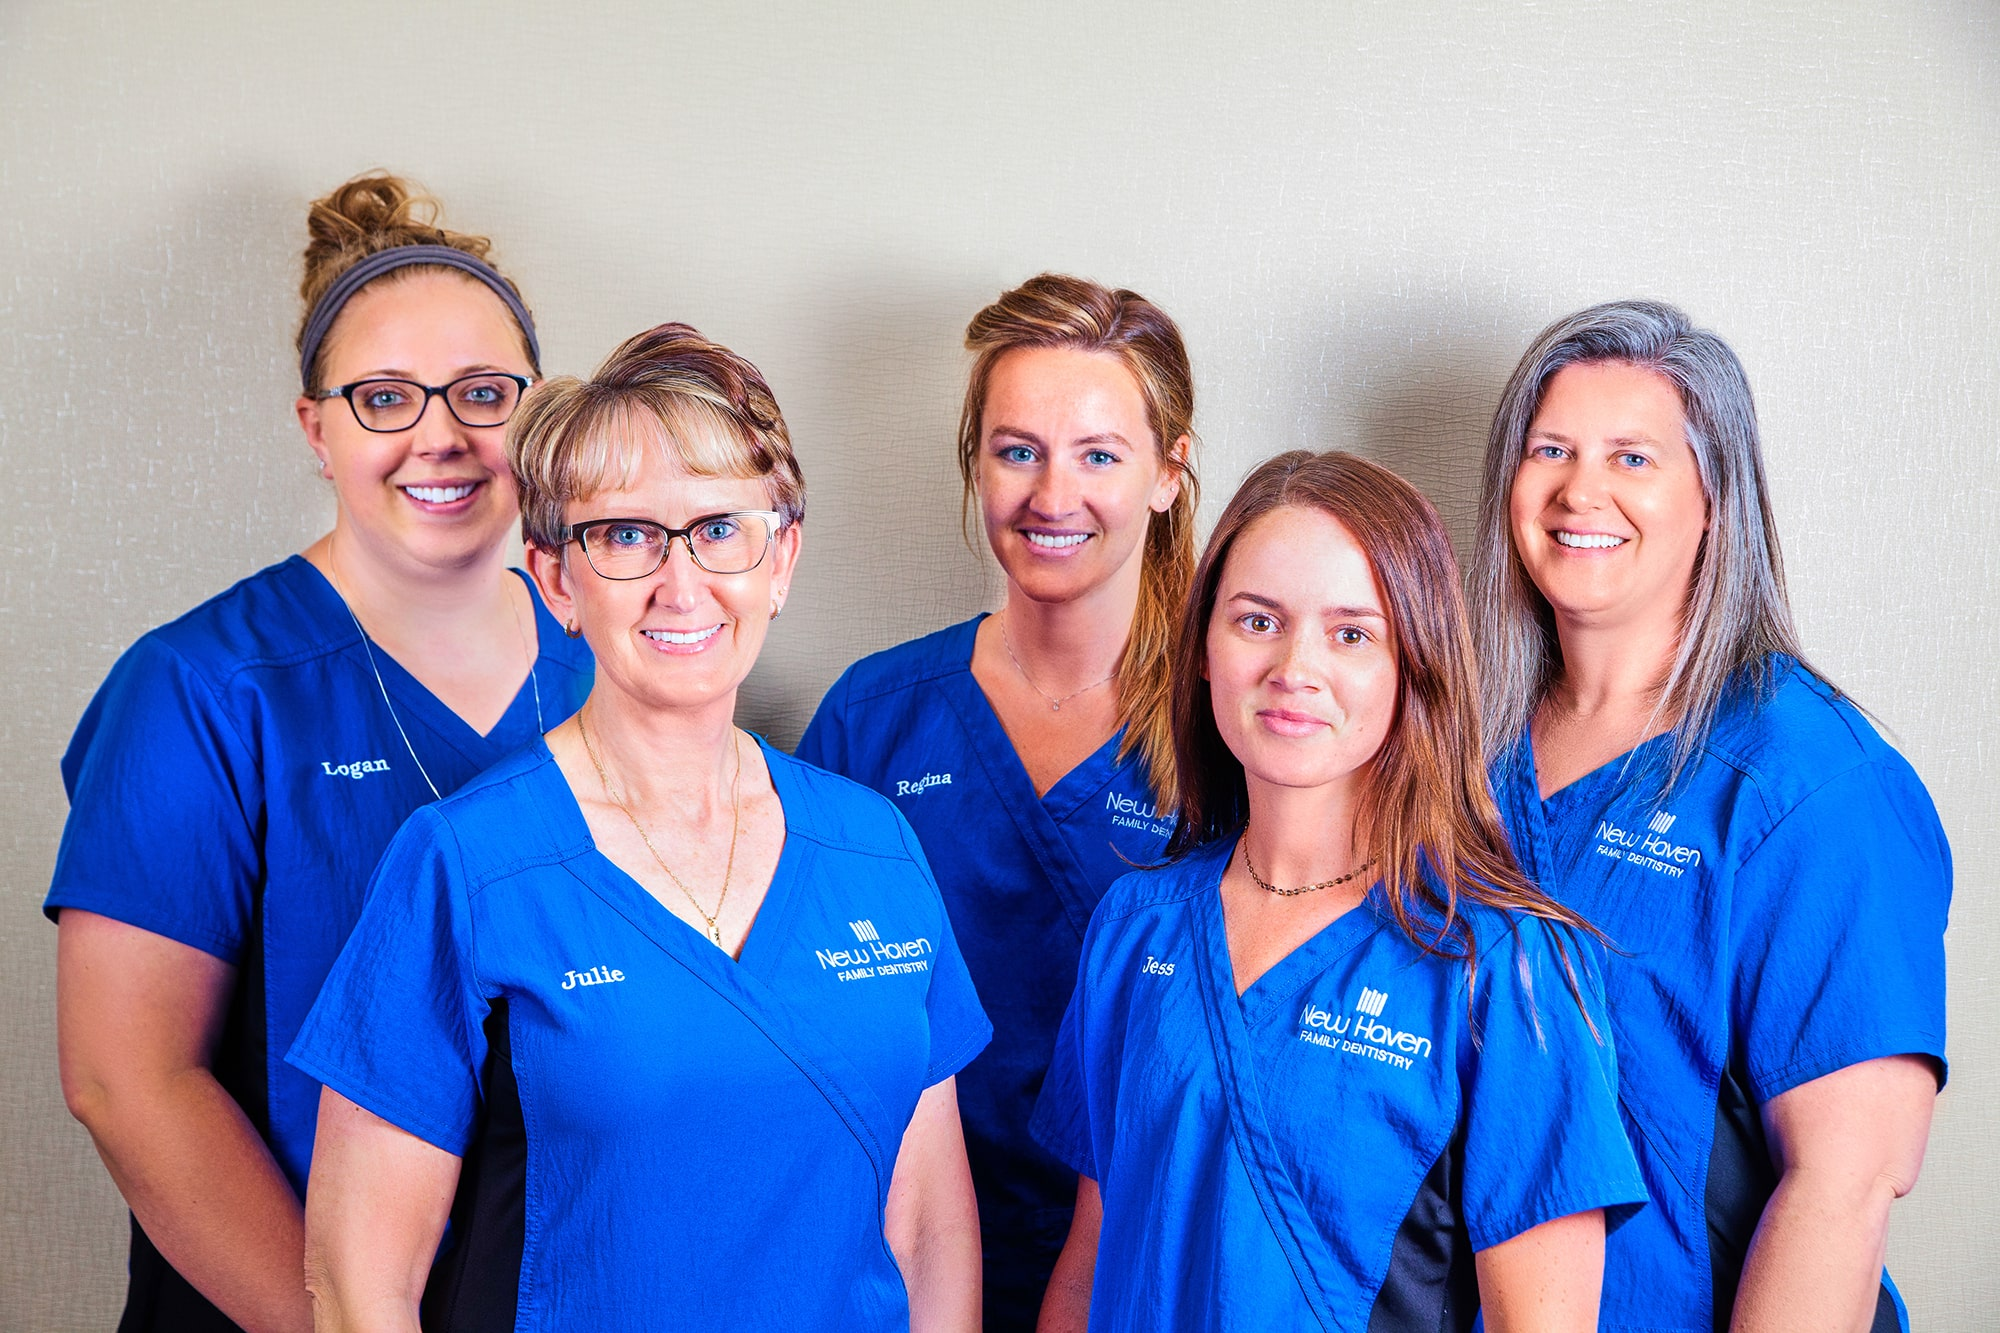 Dental assistants and hygienists at New Haven Family Dentistry